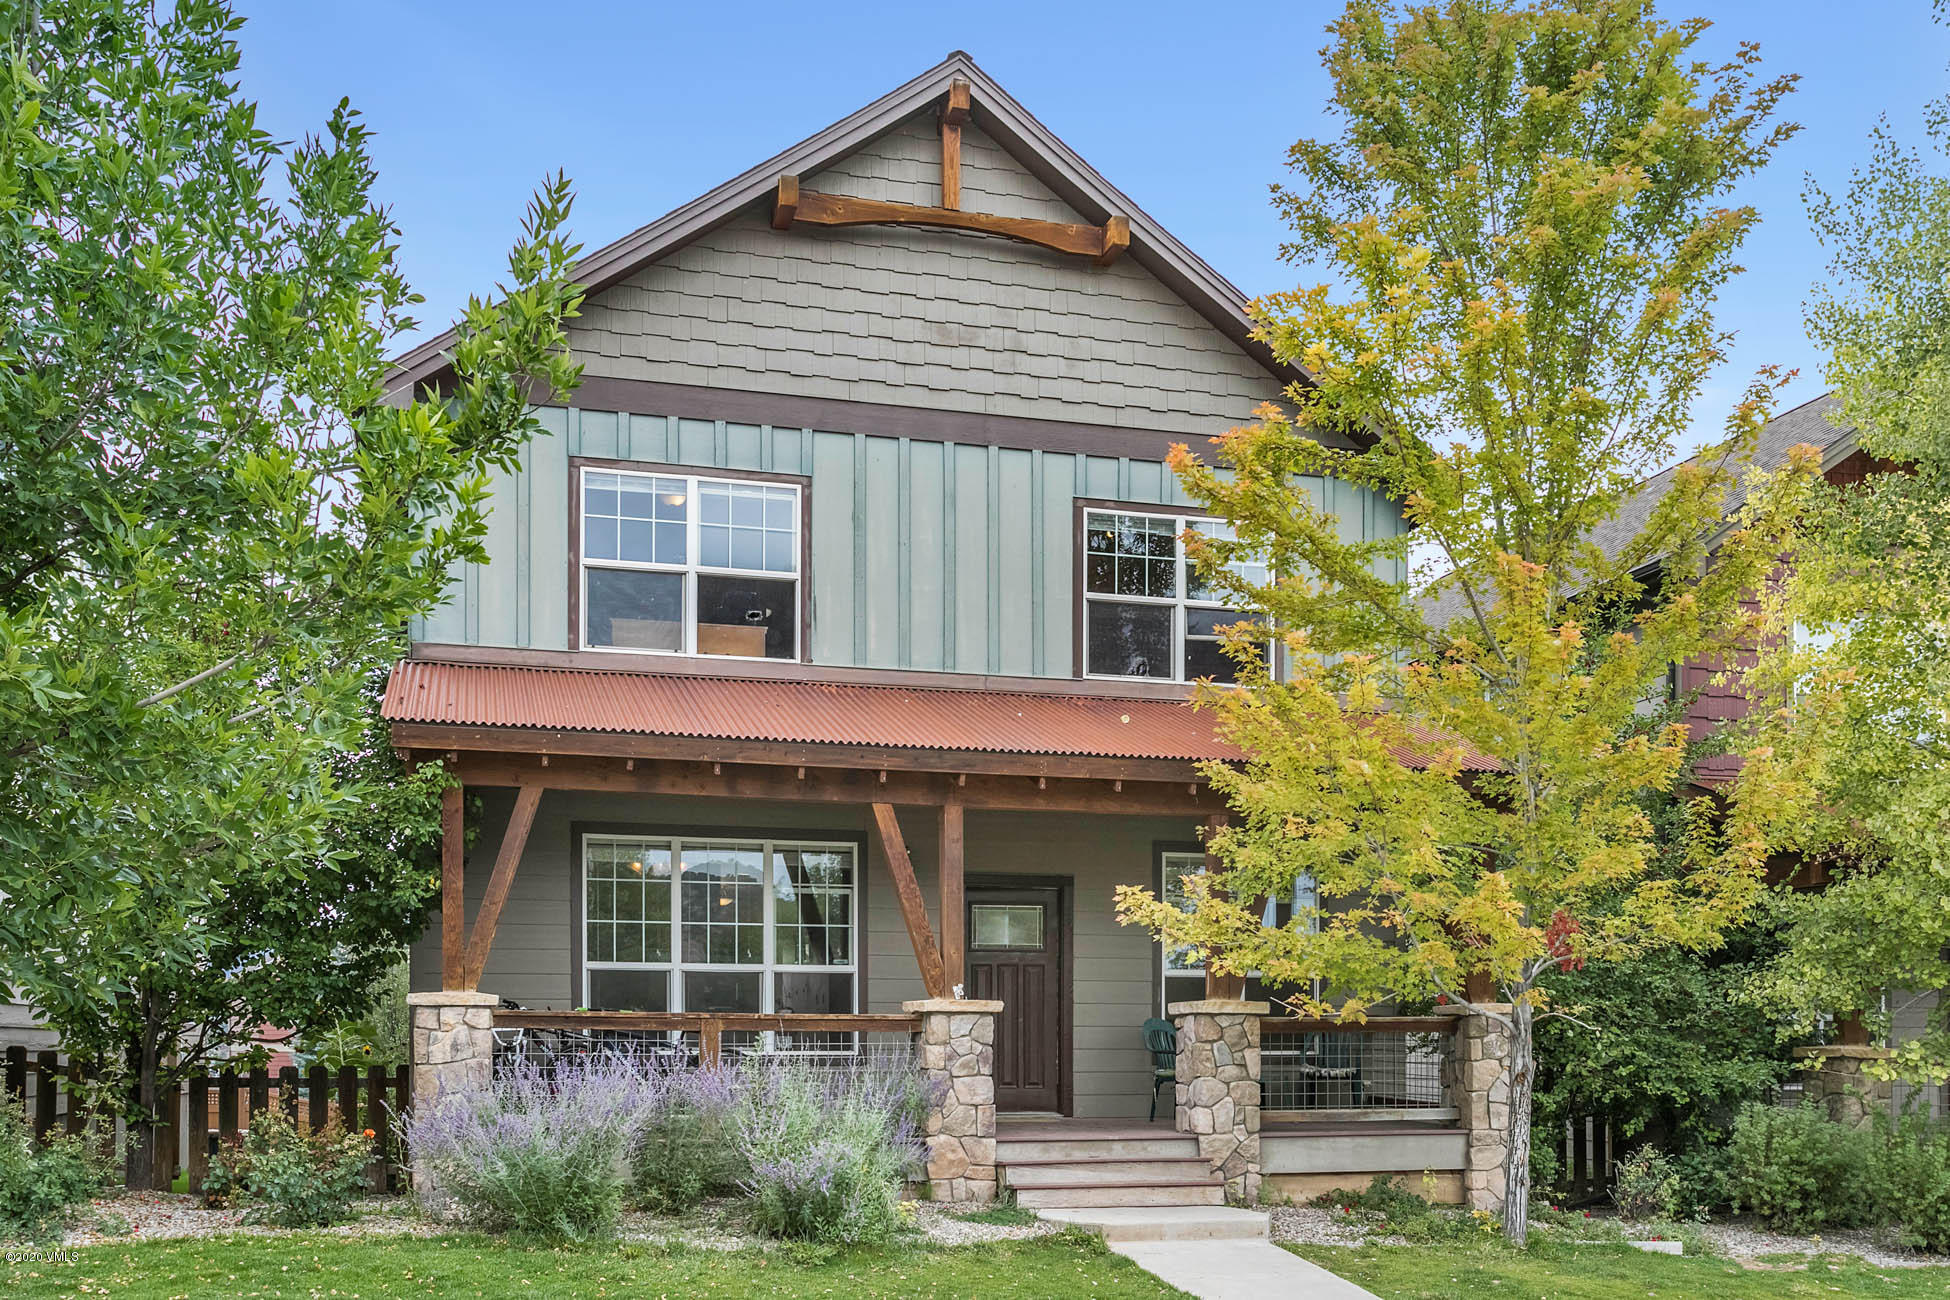 One of the original homes in Aspen Ridge and the Buckhorn Valley community . Just minutes away from National Forest access, this 3bed 3bath with an unfinished basement is a handyman's dream. To top it off you have a great fenced in back yard and a 2 car garage.